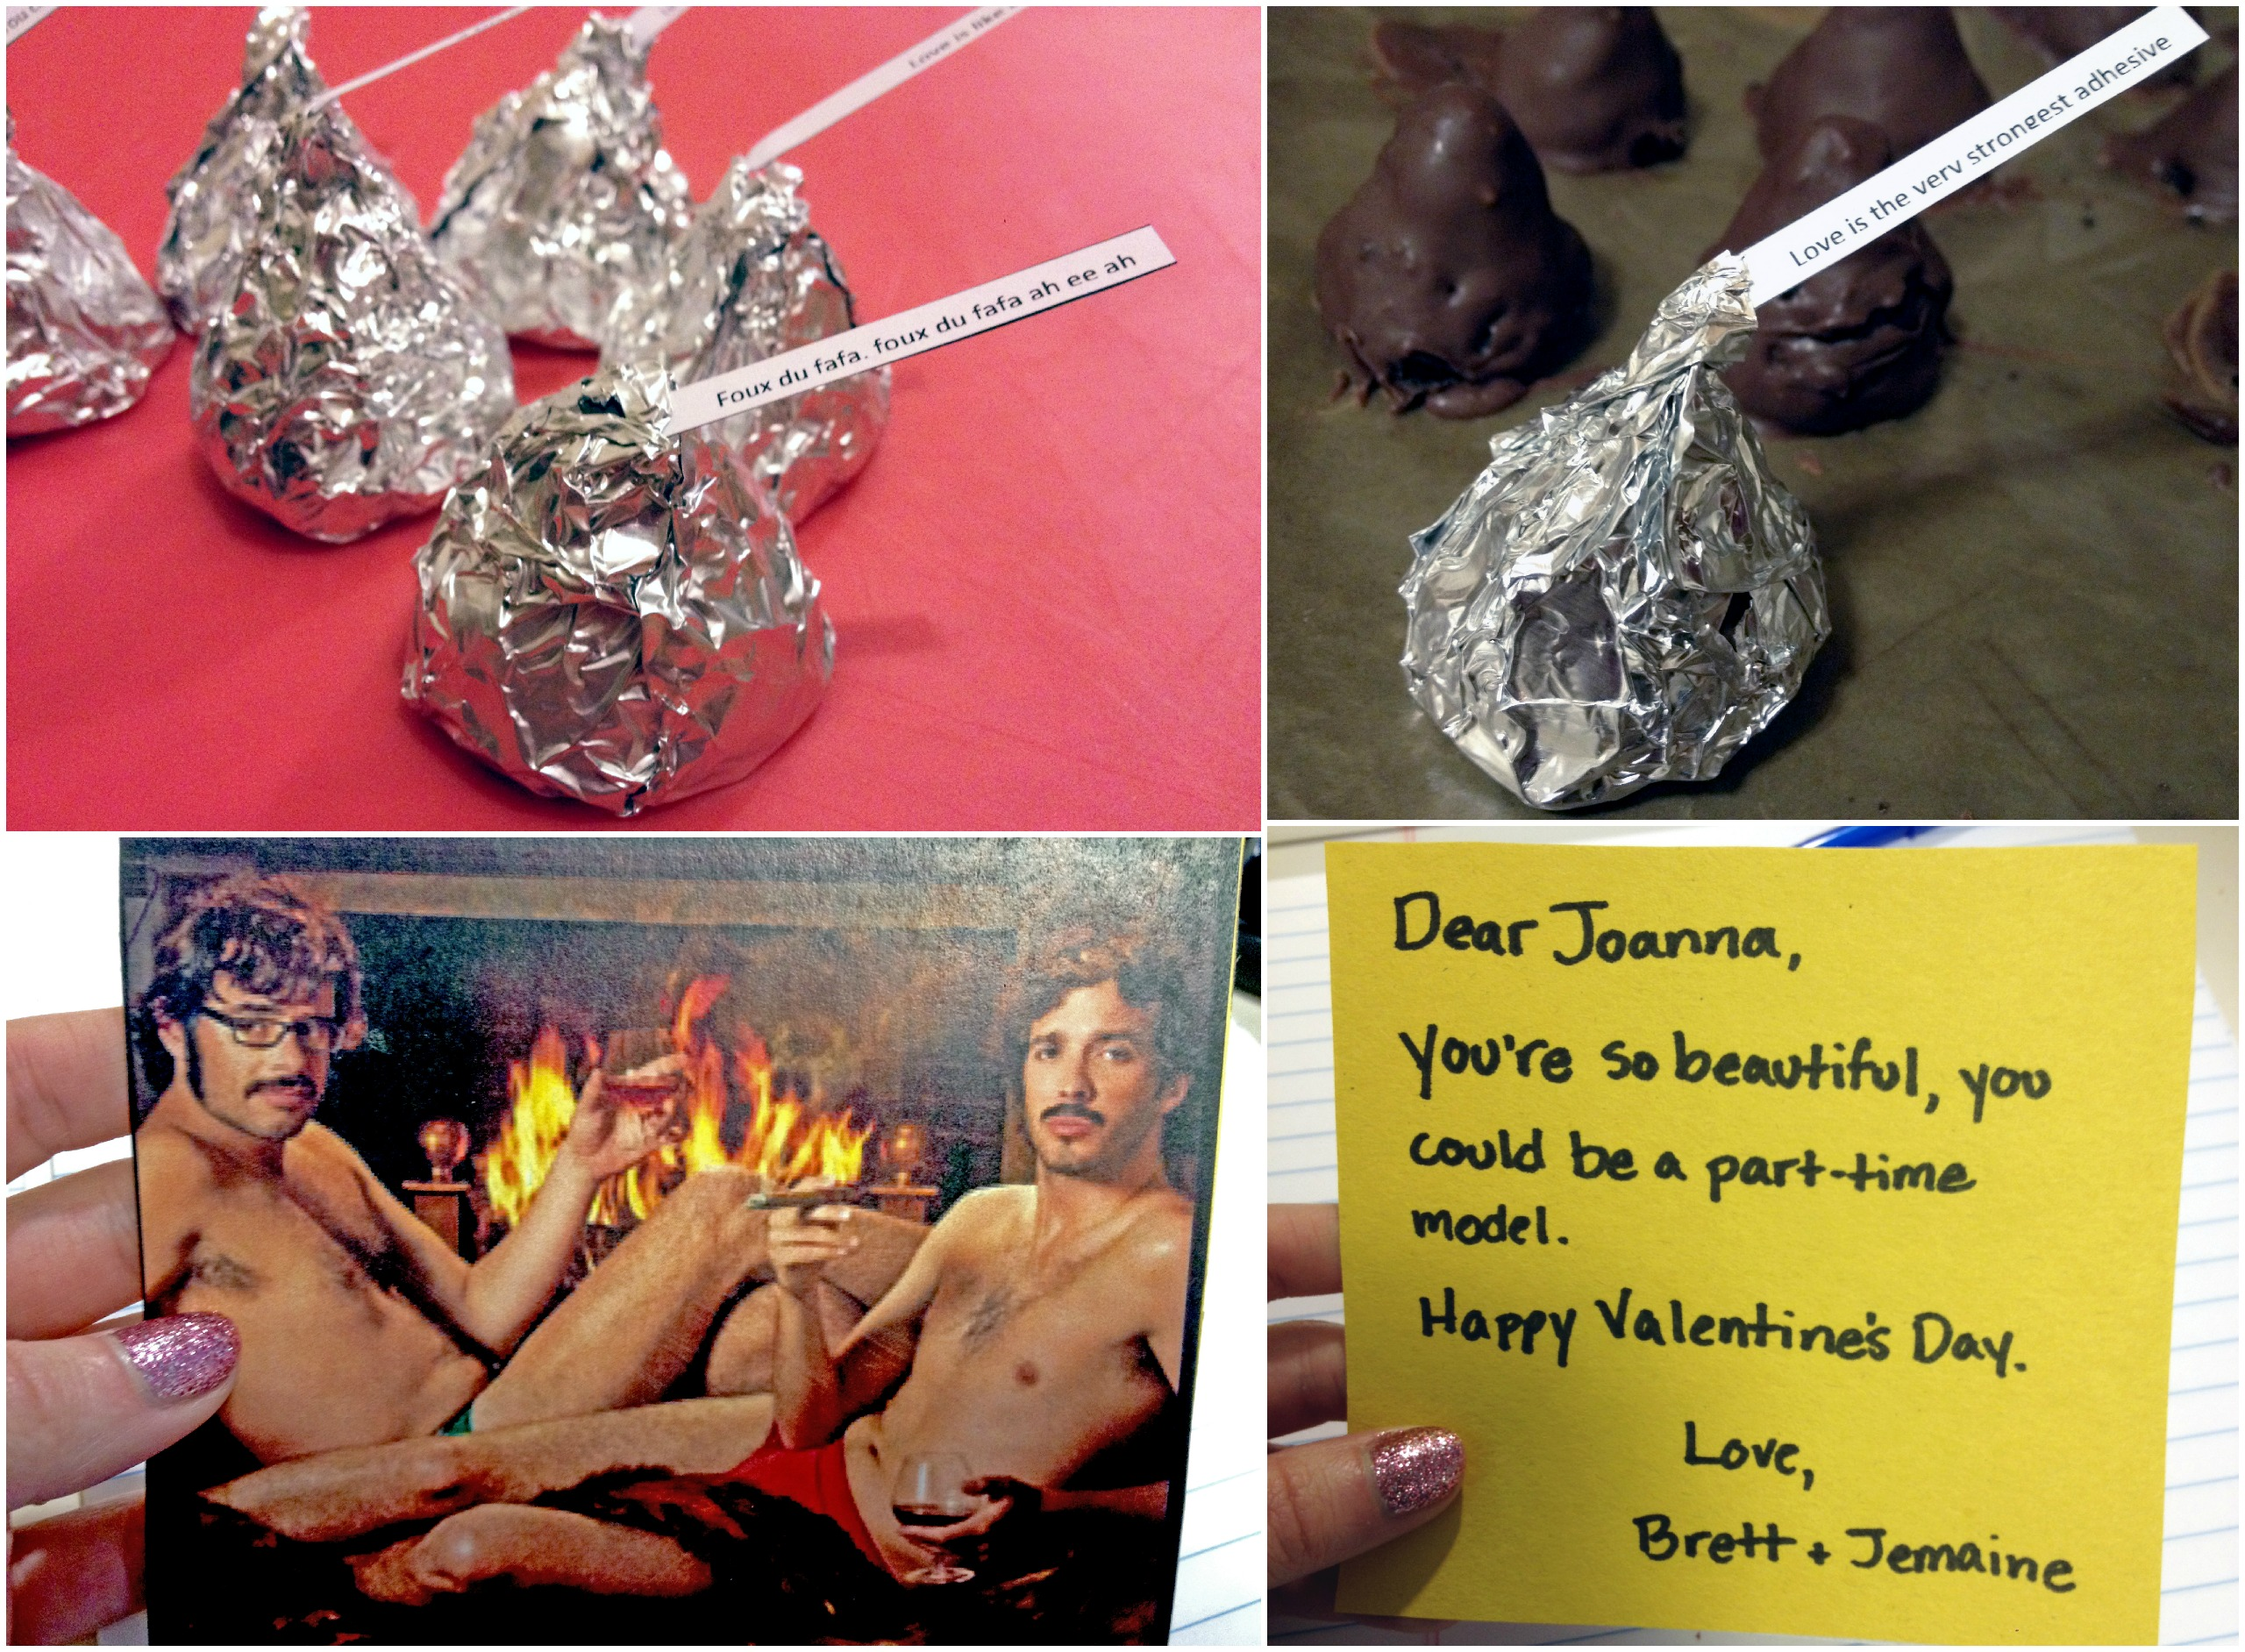 Flight of the Conchords Valentine